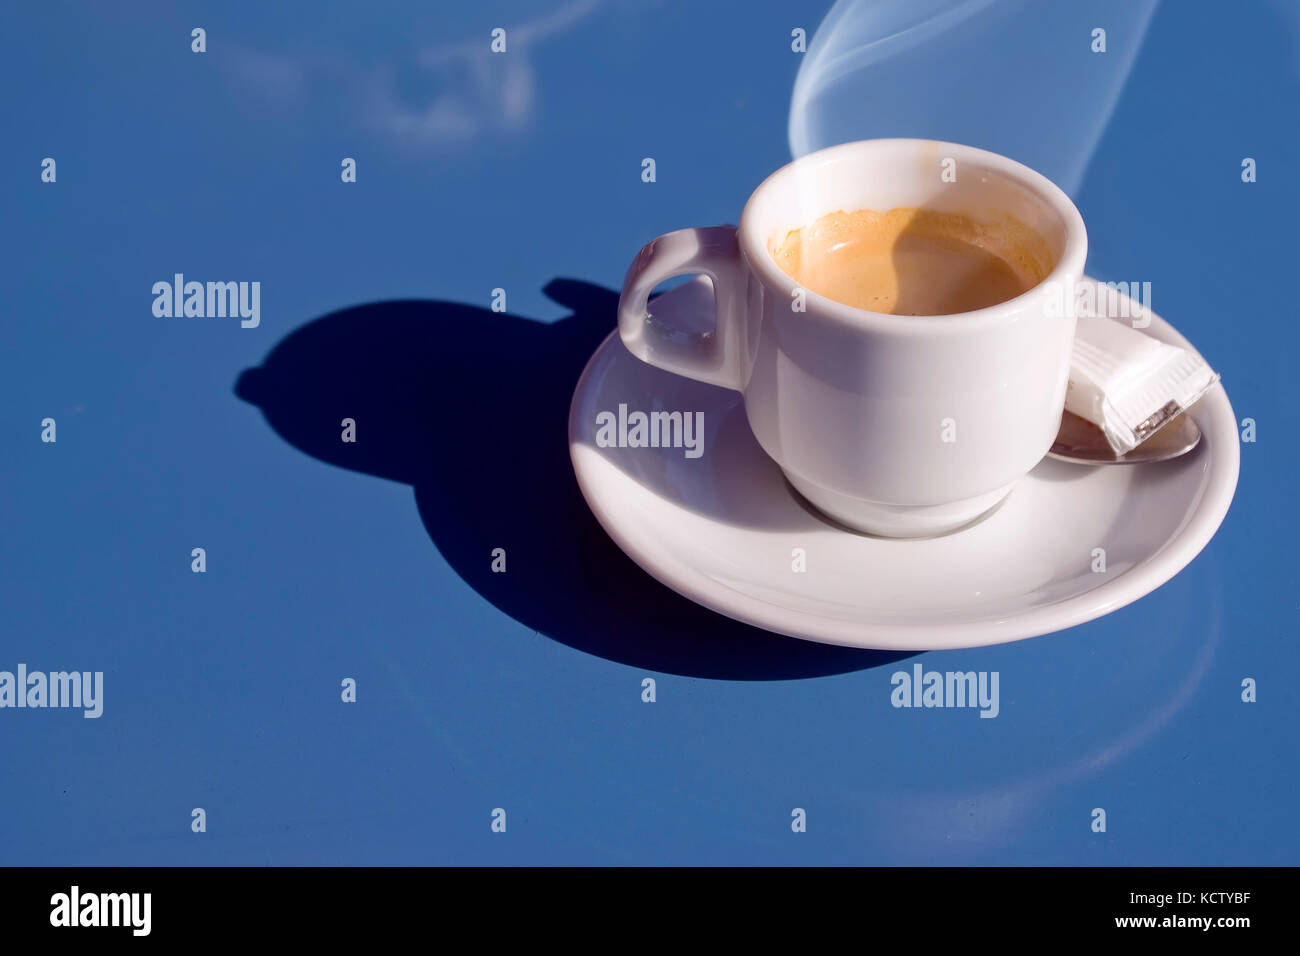 hot-italian-coffee-on-a-blue-table-KCTYB